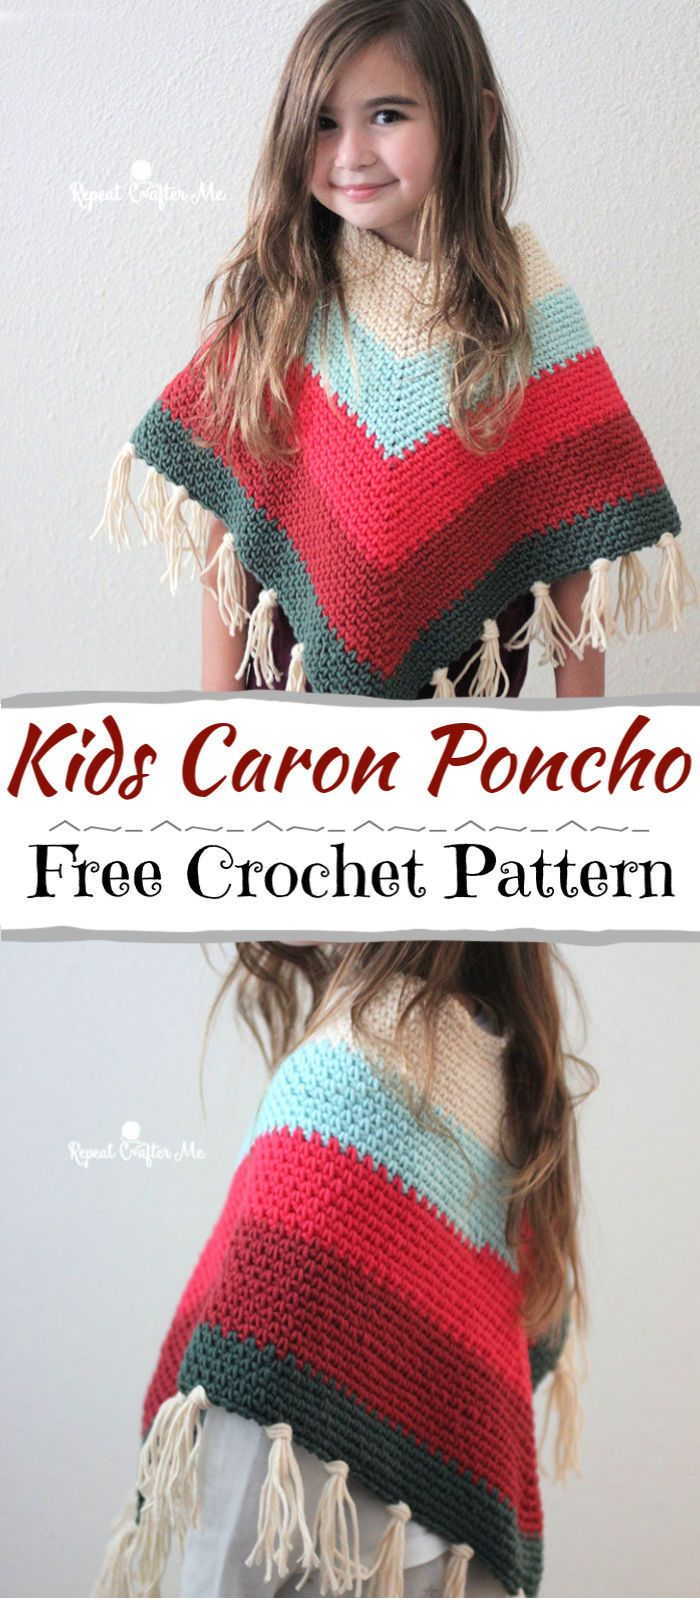 35 Free Crochet Poncho Patterns for Beginners #freecrochetpattern #freepatterns #crochetpatterns #crochetpattern #crochet #crocheting #freecrochetpatterns #crochetponcho #ponchopatterns #poncho�